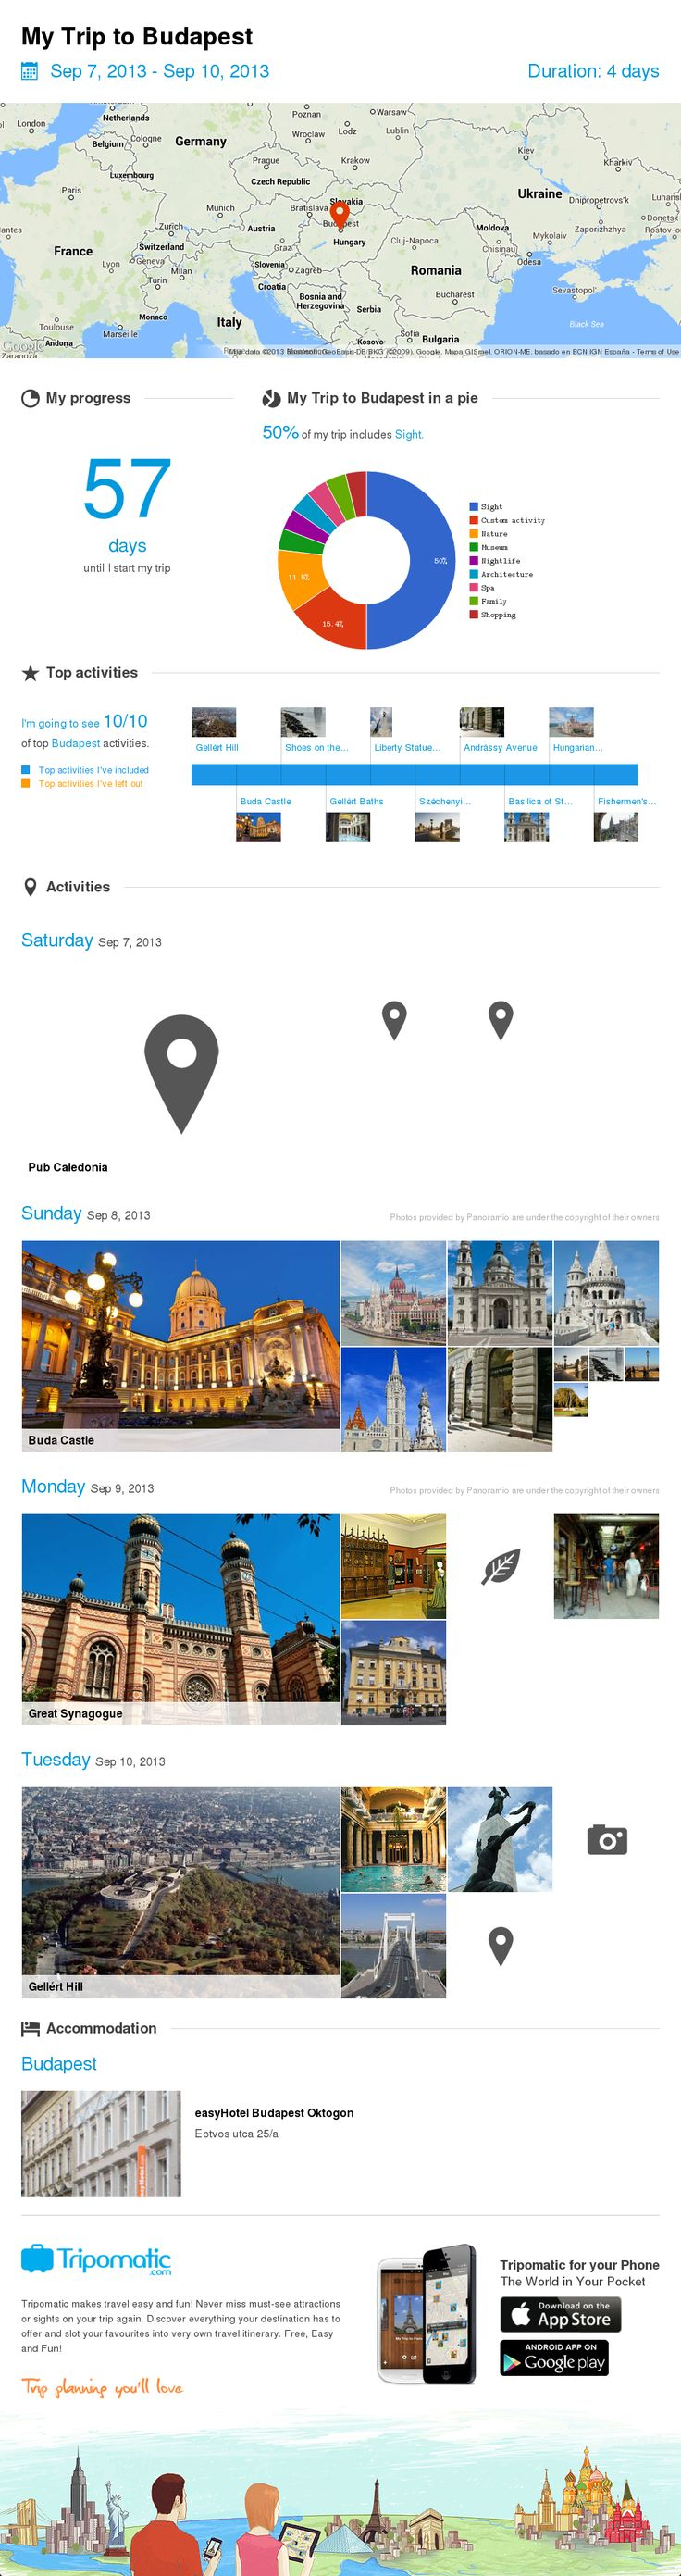 Marcele prepared very nice itinerary for her trip to #Budapest and it really seems as a great trip - check it out!